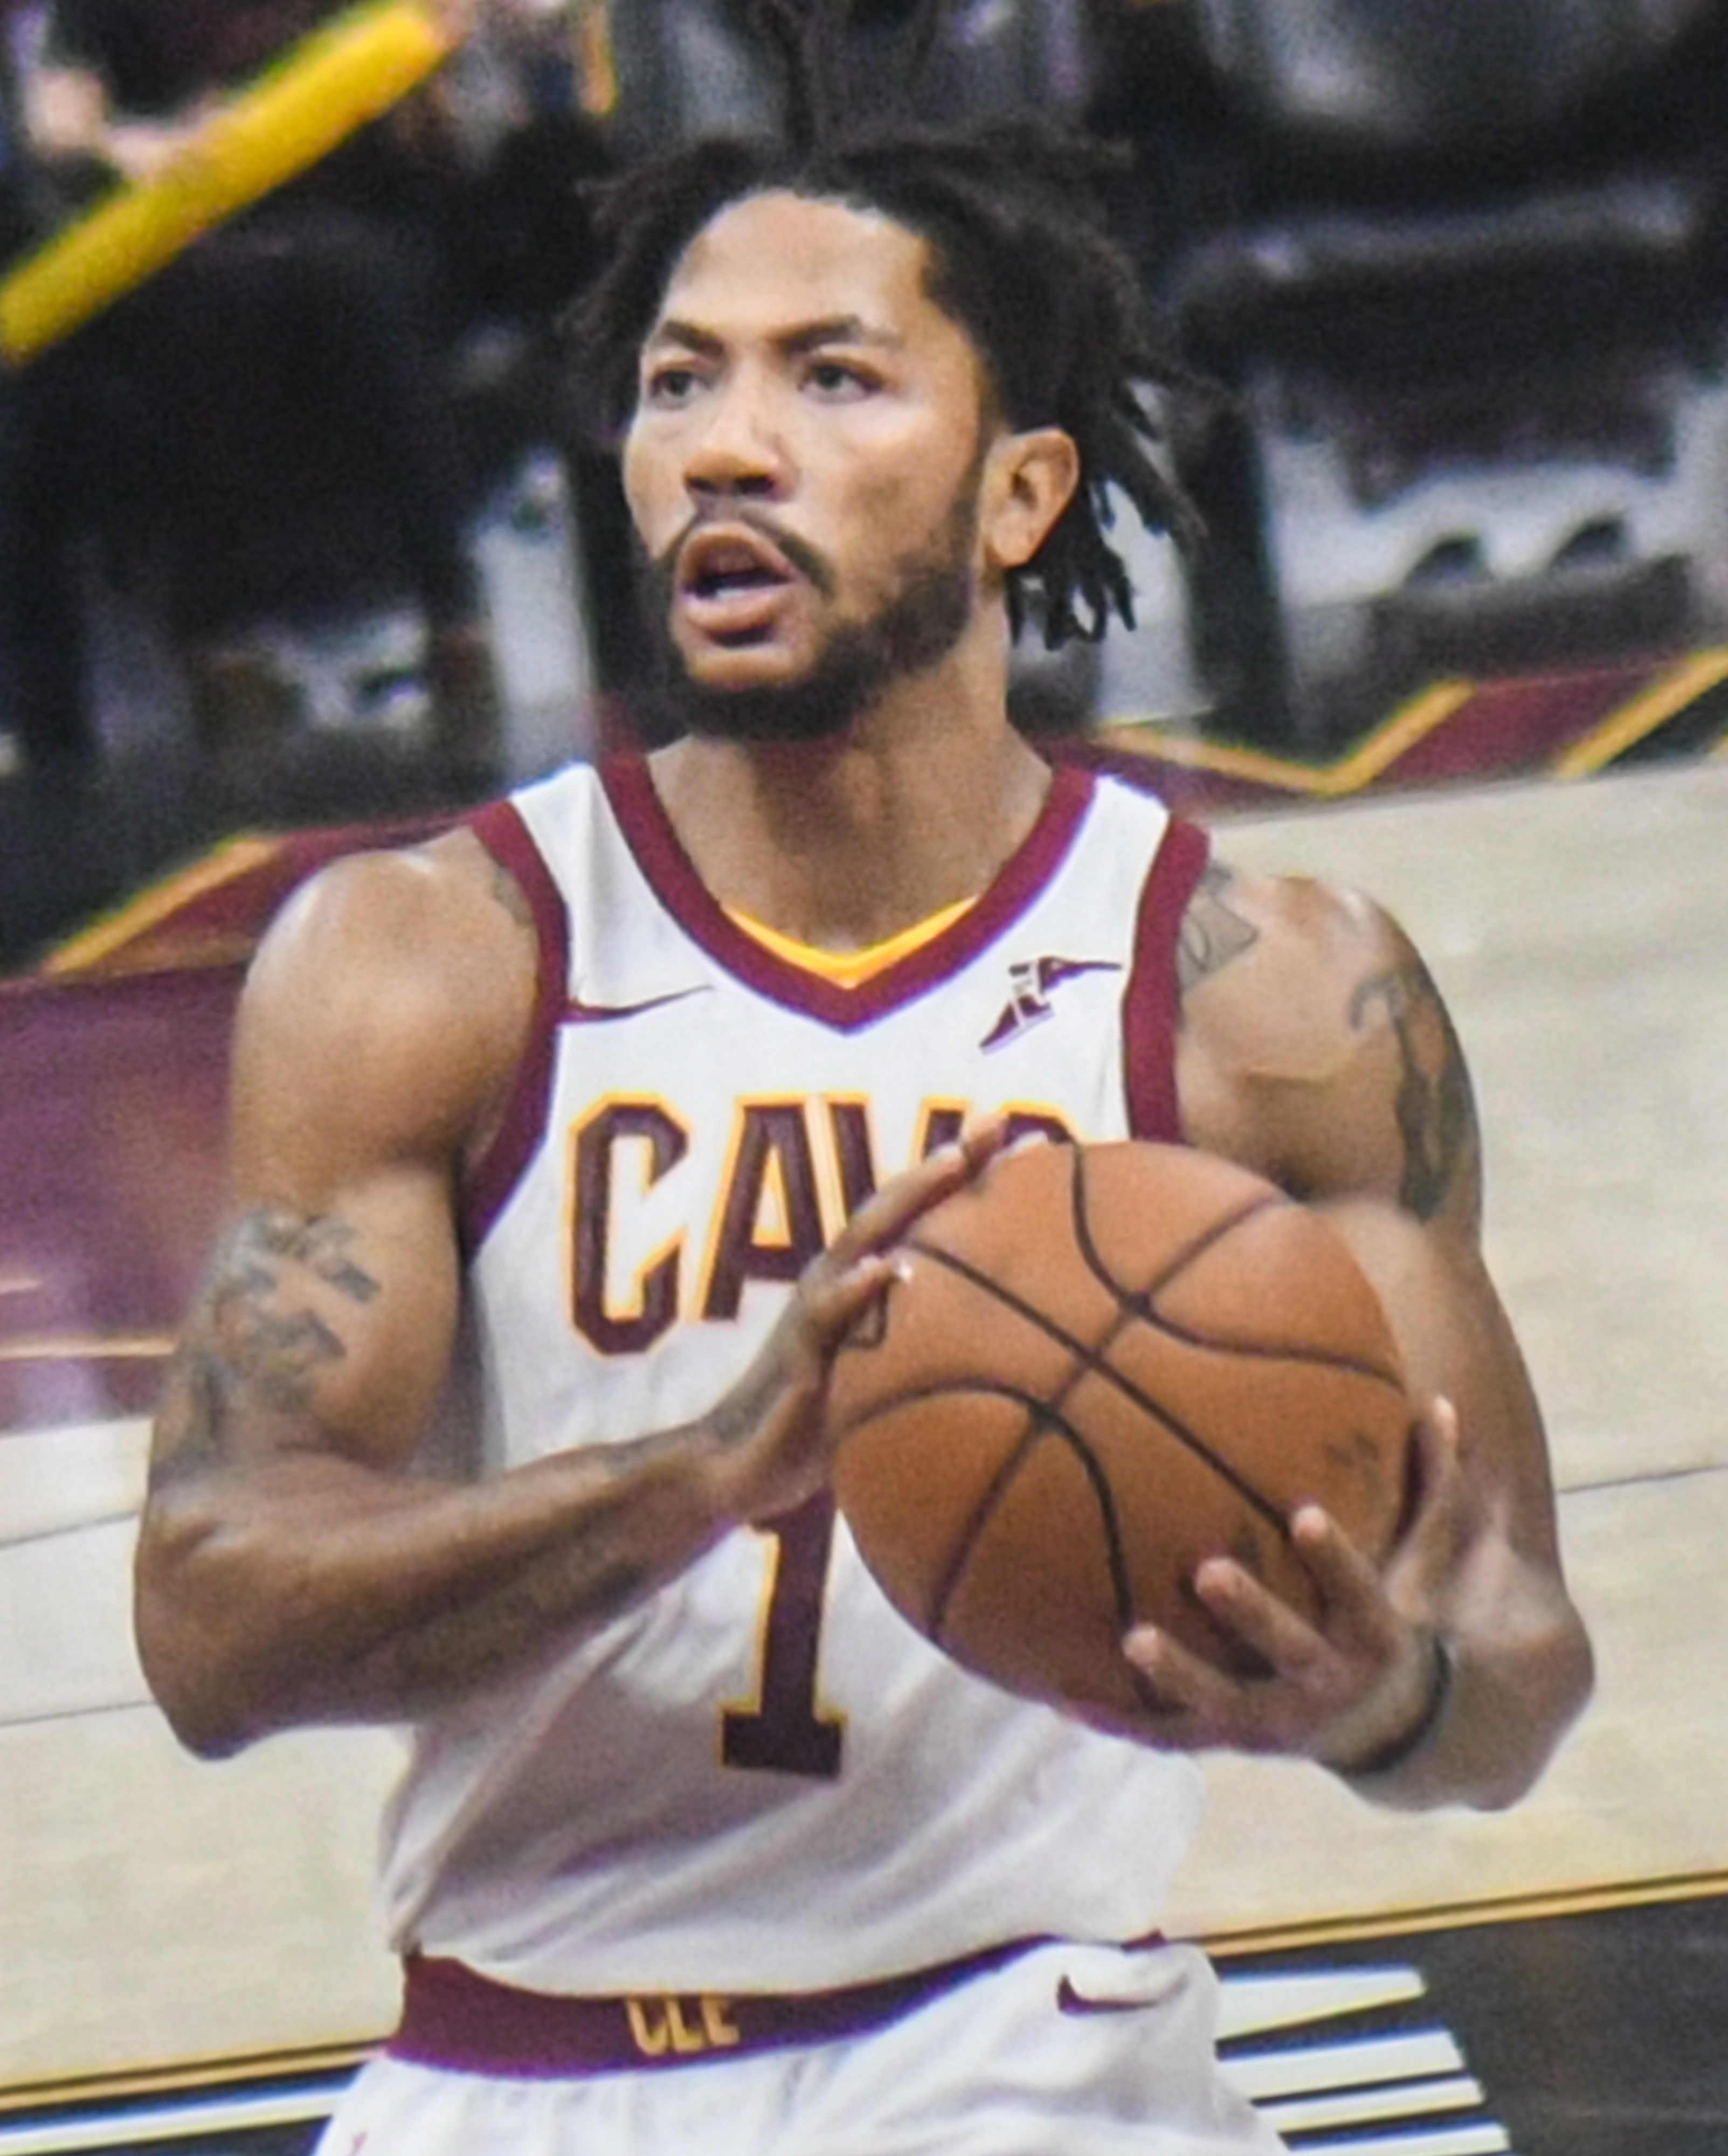 The 29-year old son of father (?) and mother(?) Derrick Rose in 2018 photo. Derrick Rose earned a 18 million dollar salary - leaving the net worth at 70 million in 2018